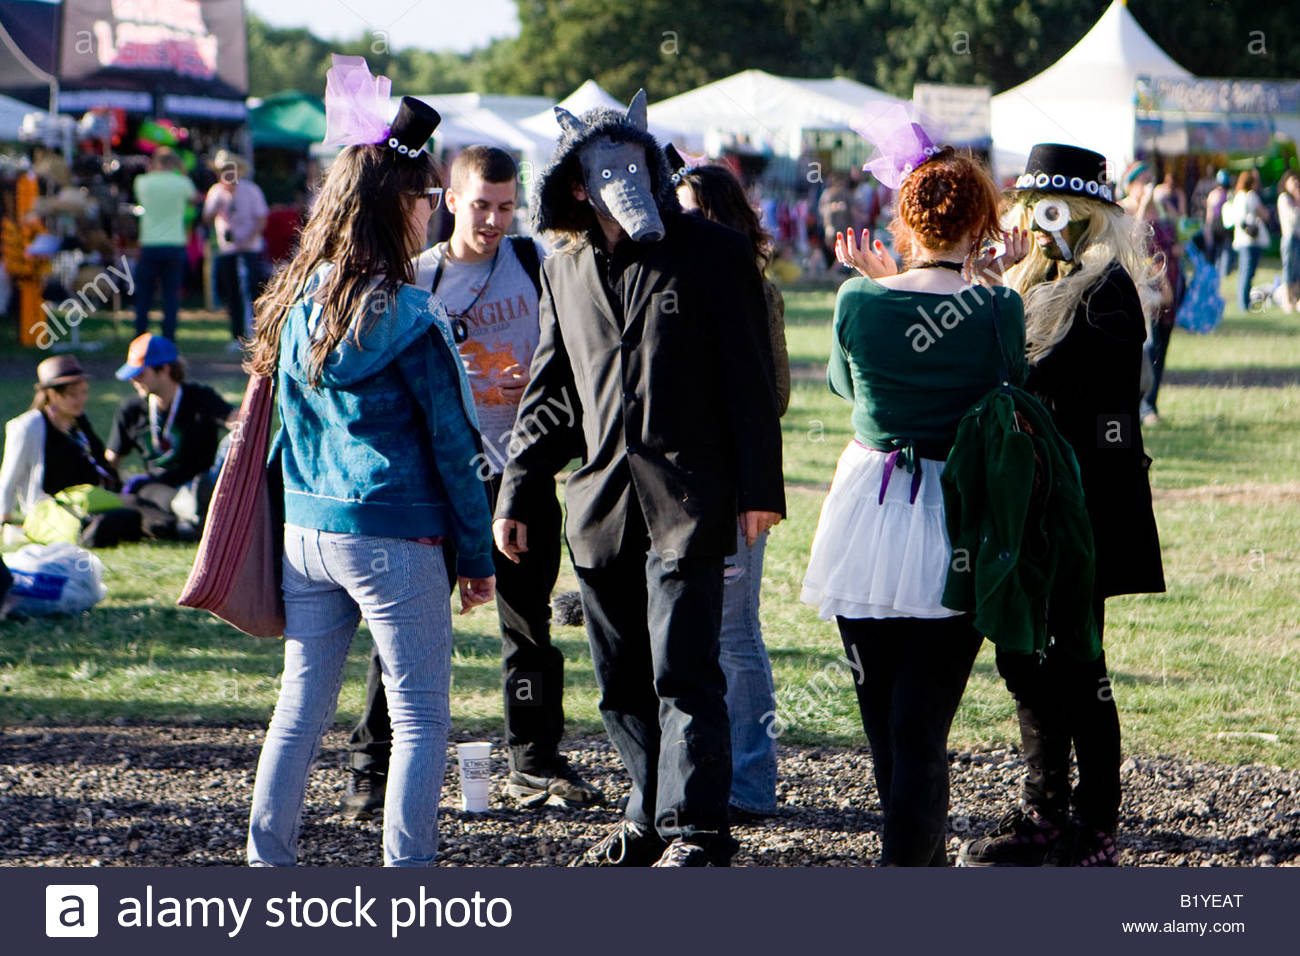 people in fancy dress at the mighty boosh festival at the hop farm in kent england - Stock Image